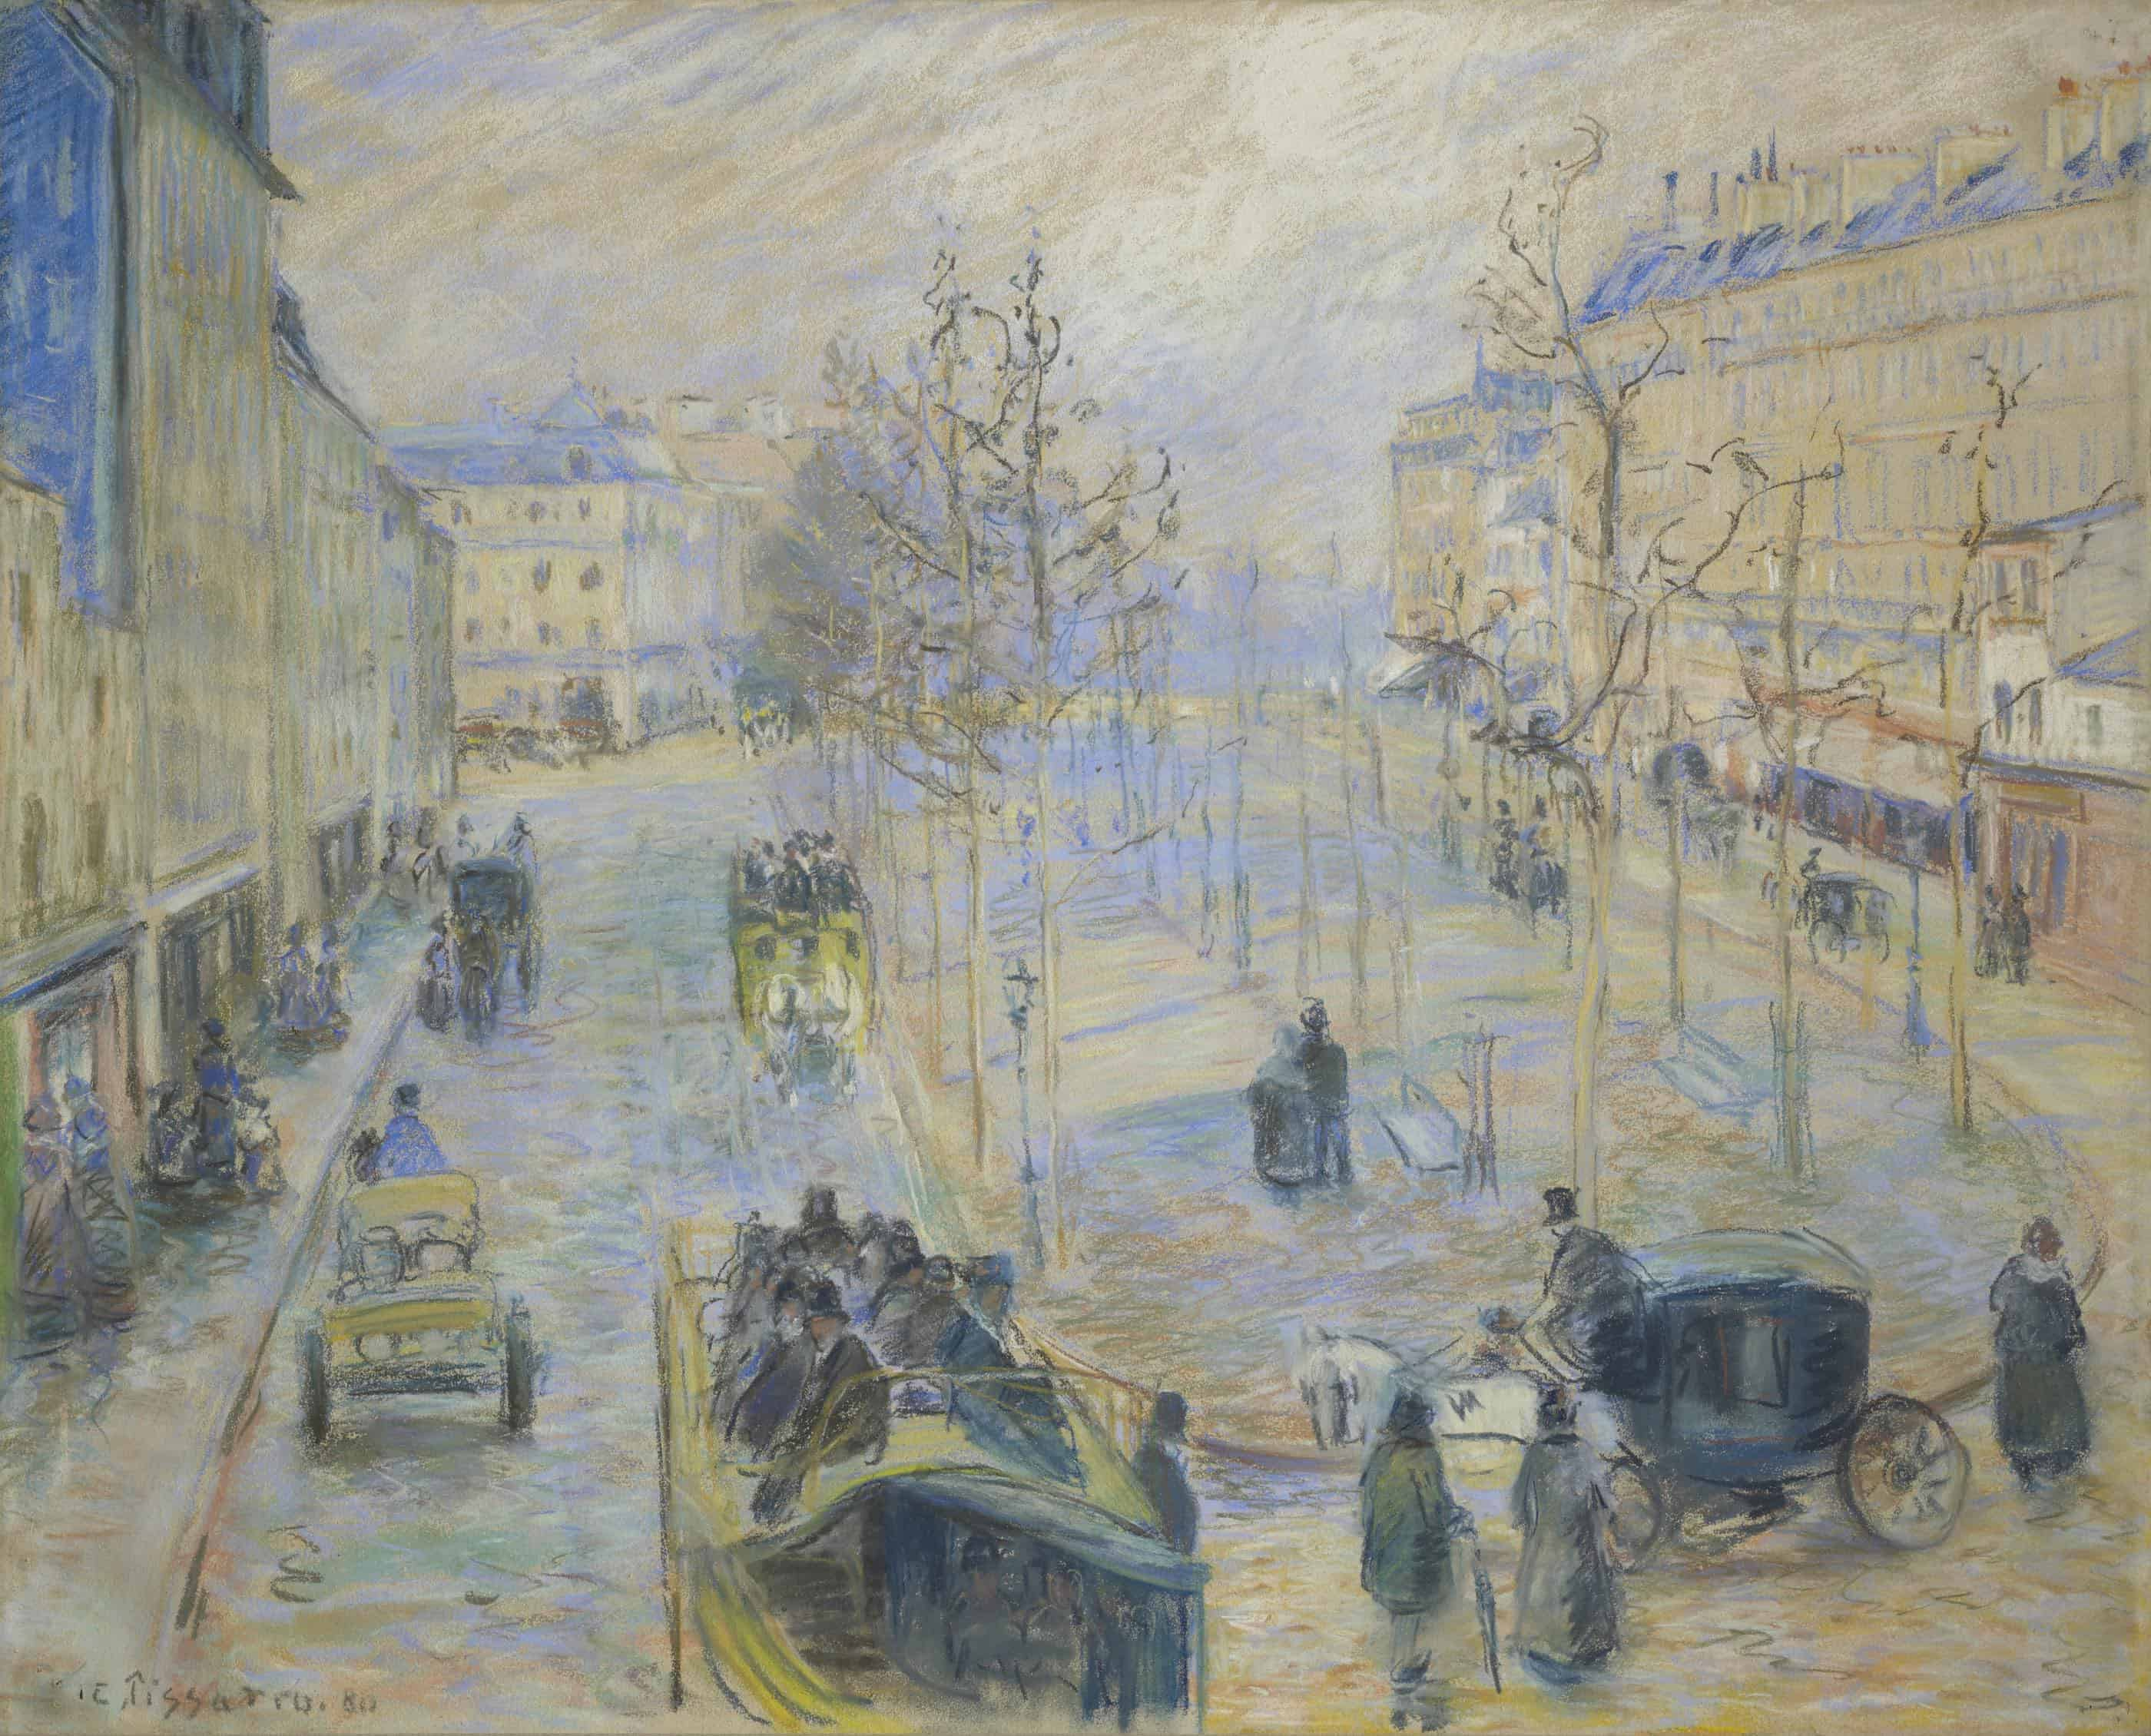 Clark Art Institute will celebrate the opening of Impressionist Line: From Degas to Toulouse-Lautrec on Nov. 5 from 1 to 4 p.m. — an exhibit of prints and drawings from the 1860s to the 1890s inclucing drawings by Claude Monet, color woodcuts by Paul Gauguin, etchings by Édouard Manet, pastels by Edgar Degas, and color lithographs by Henri de Toulouse-Lautrec. Laborers, performers, and racehorses in settings that vary from the French countryside and far-flung islands to Parisian cafés and dancehalls. Free admission to the galleries, activities; performance and talk @ 1 PM with New York dancer Jody Sperling, based on modern dance pioneer Loïe Fuller (1862-1928)'s work inspired by the Impressionists' effort to capture light, color, and movement. Talk on the new exhibit at 3 p.m. 225 South St., Williamstown. 413-458-2303, clarkart.edu